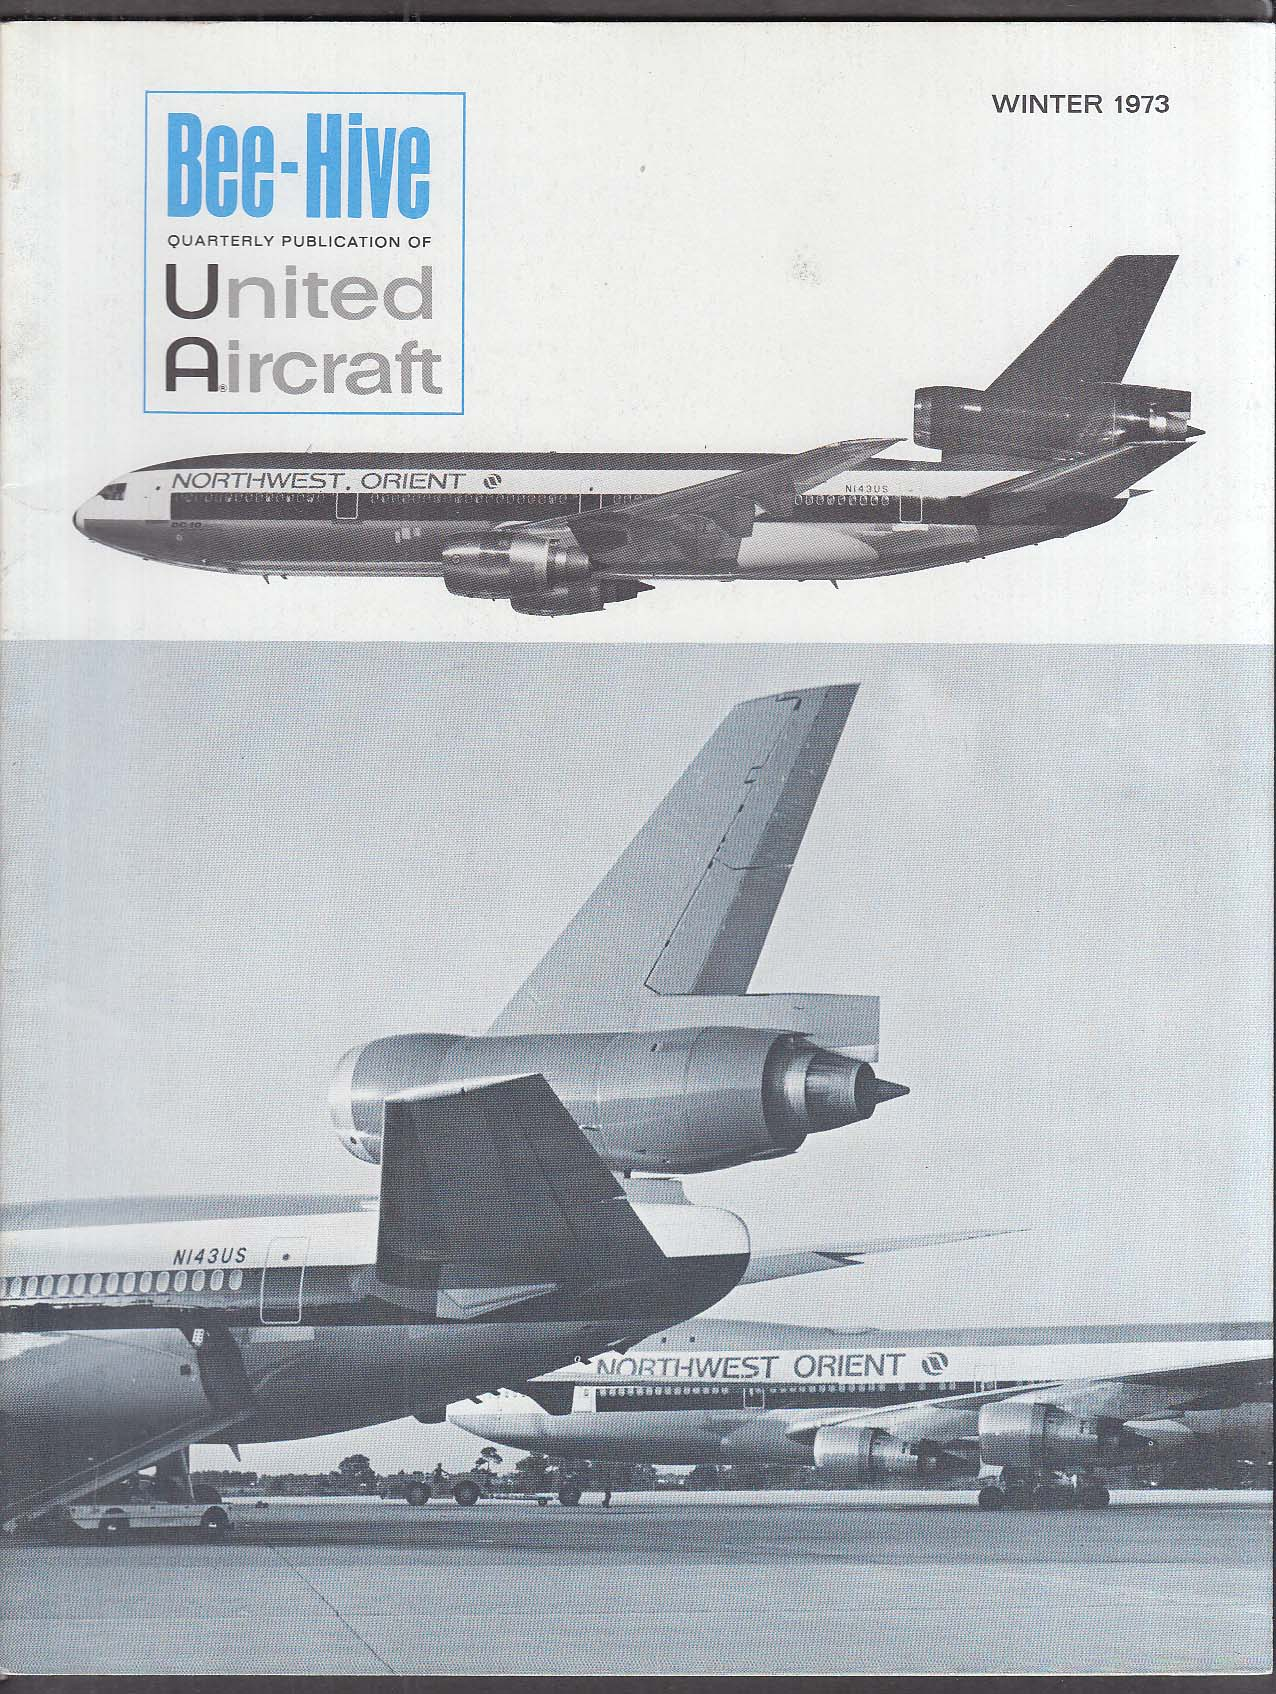 BEE-HIVE Douglas DC-10 Sikorsky Lufthansa United Aircraft Winter 1973